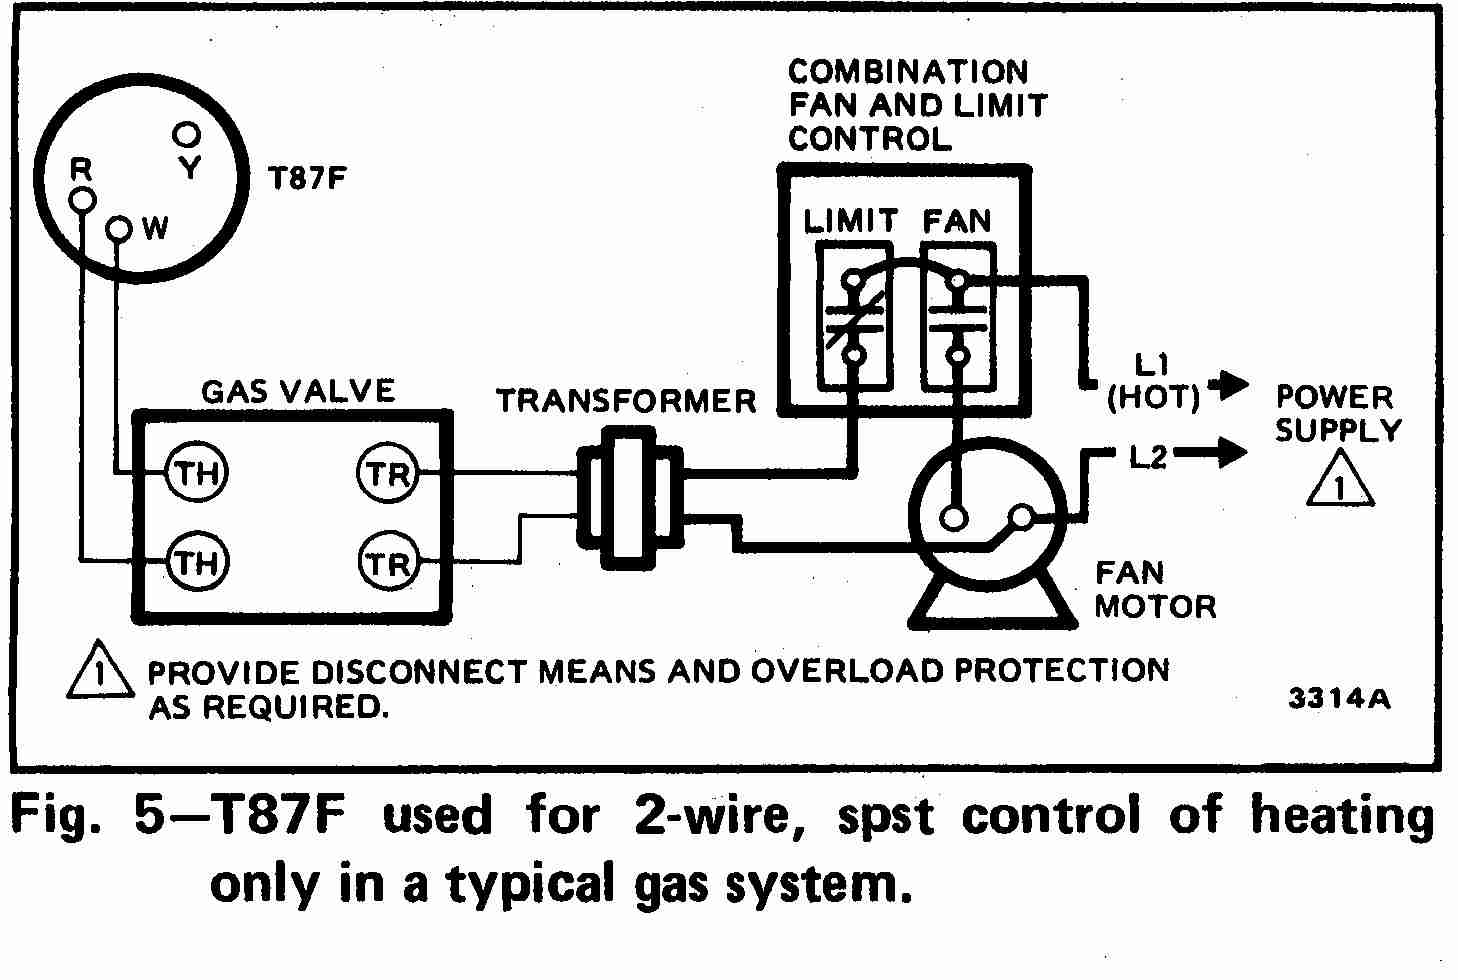 heating thermostat wiring diagram guide to wiring connections for room thermostats honeywell t87f thermostat wiring diagram for 2 wire spst